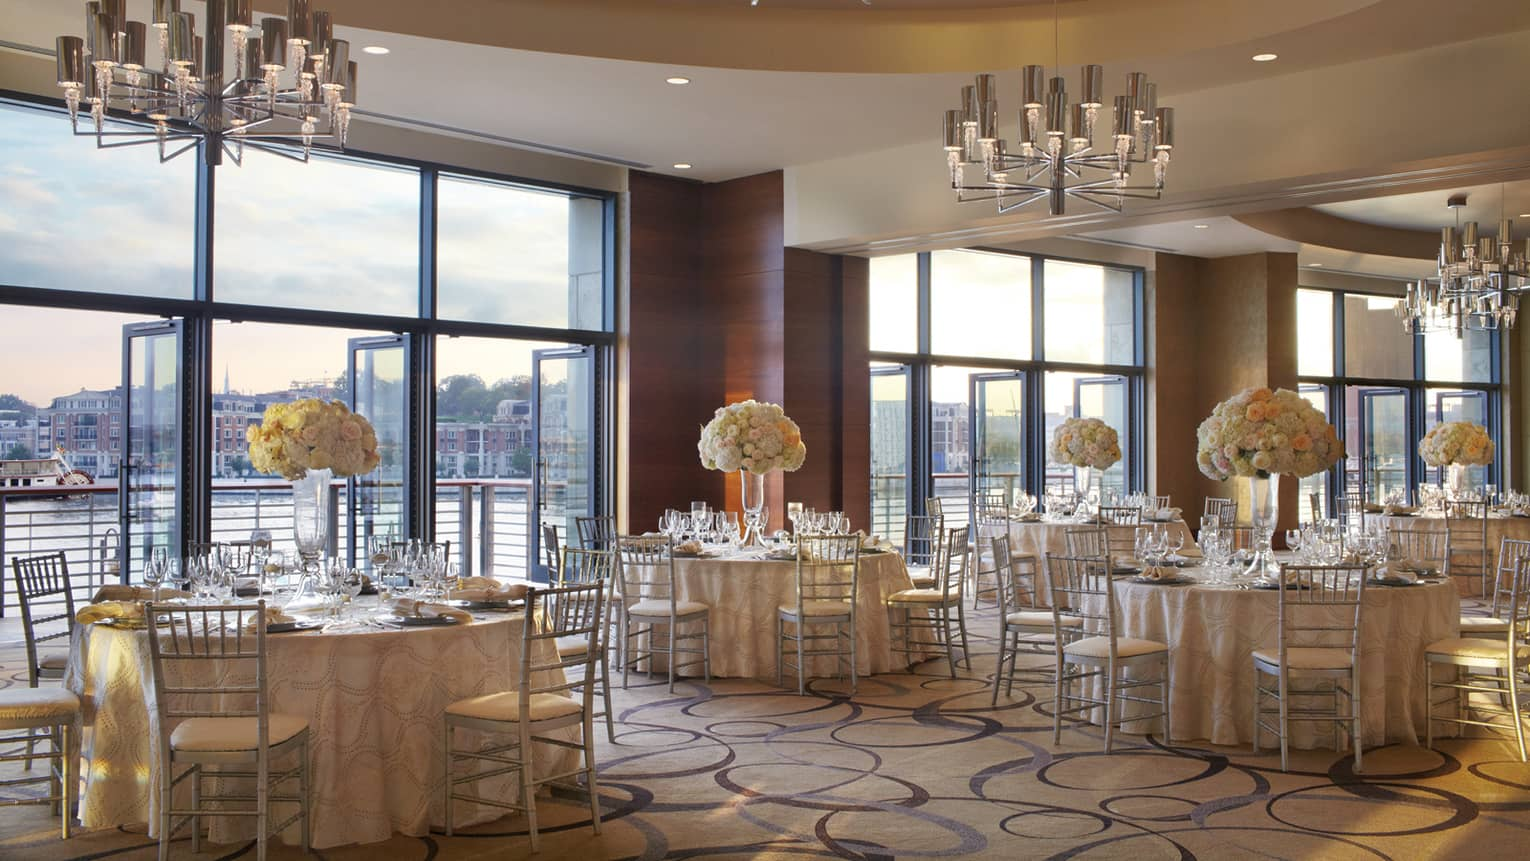 Ballroom with elegant round banquet tables by open air floor-to-ceiling windows overlooking Harbor East water